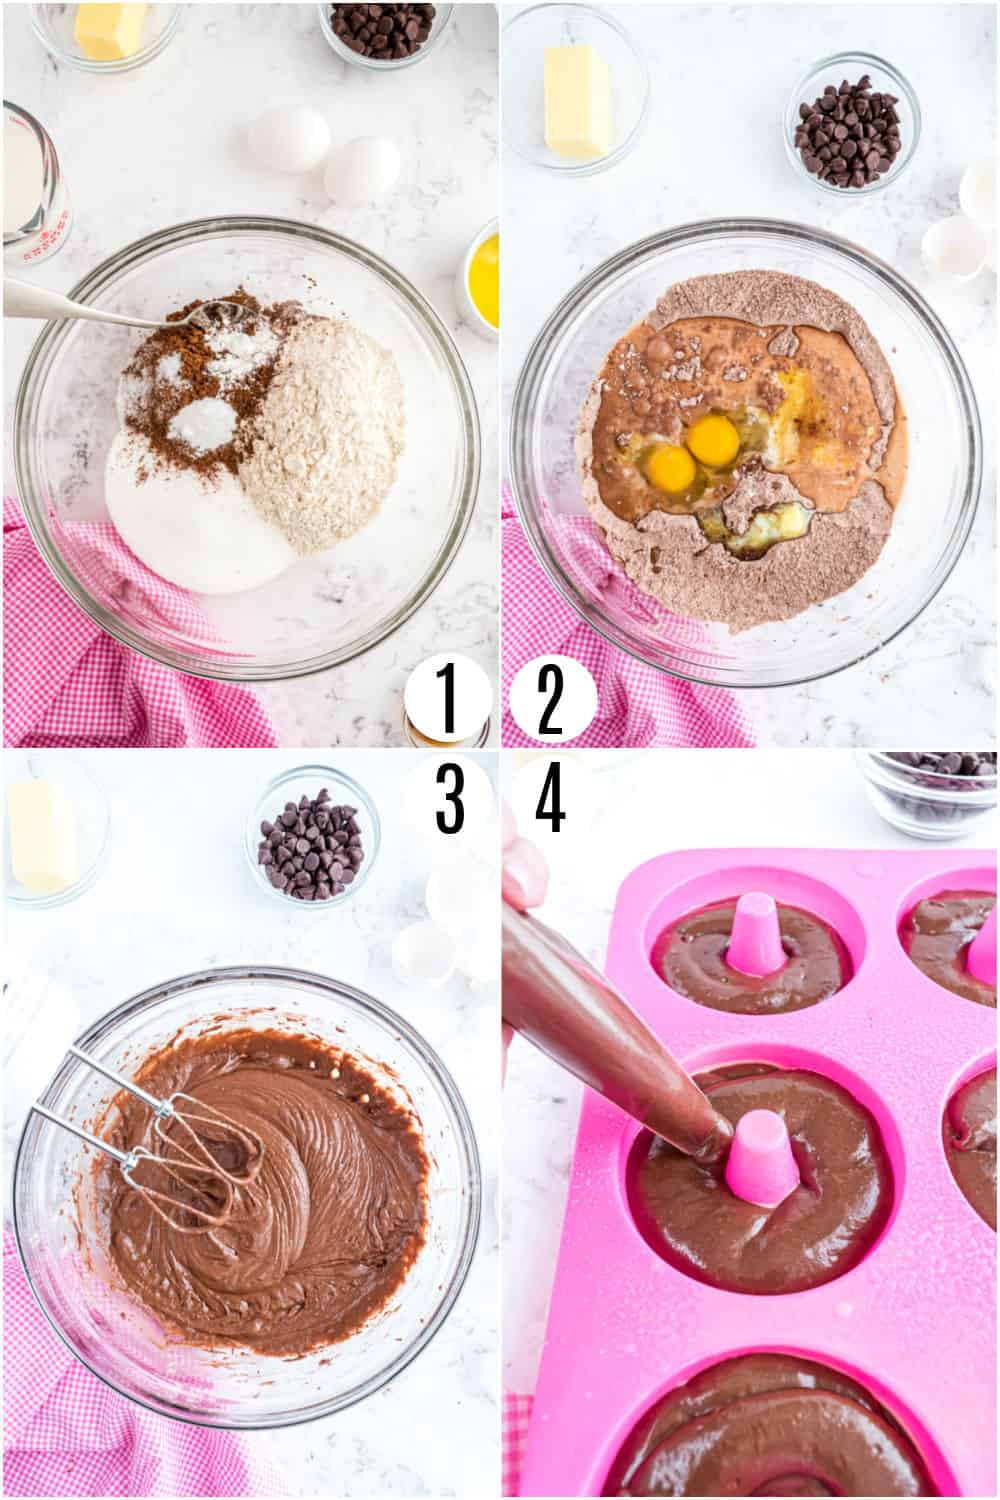 Step by step photos showing how to make